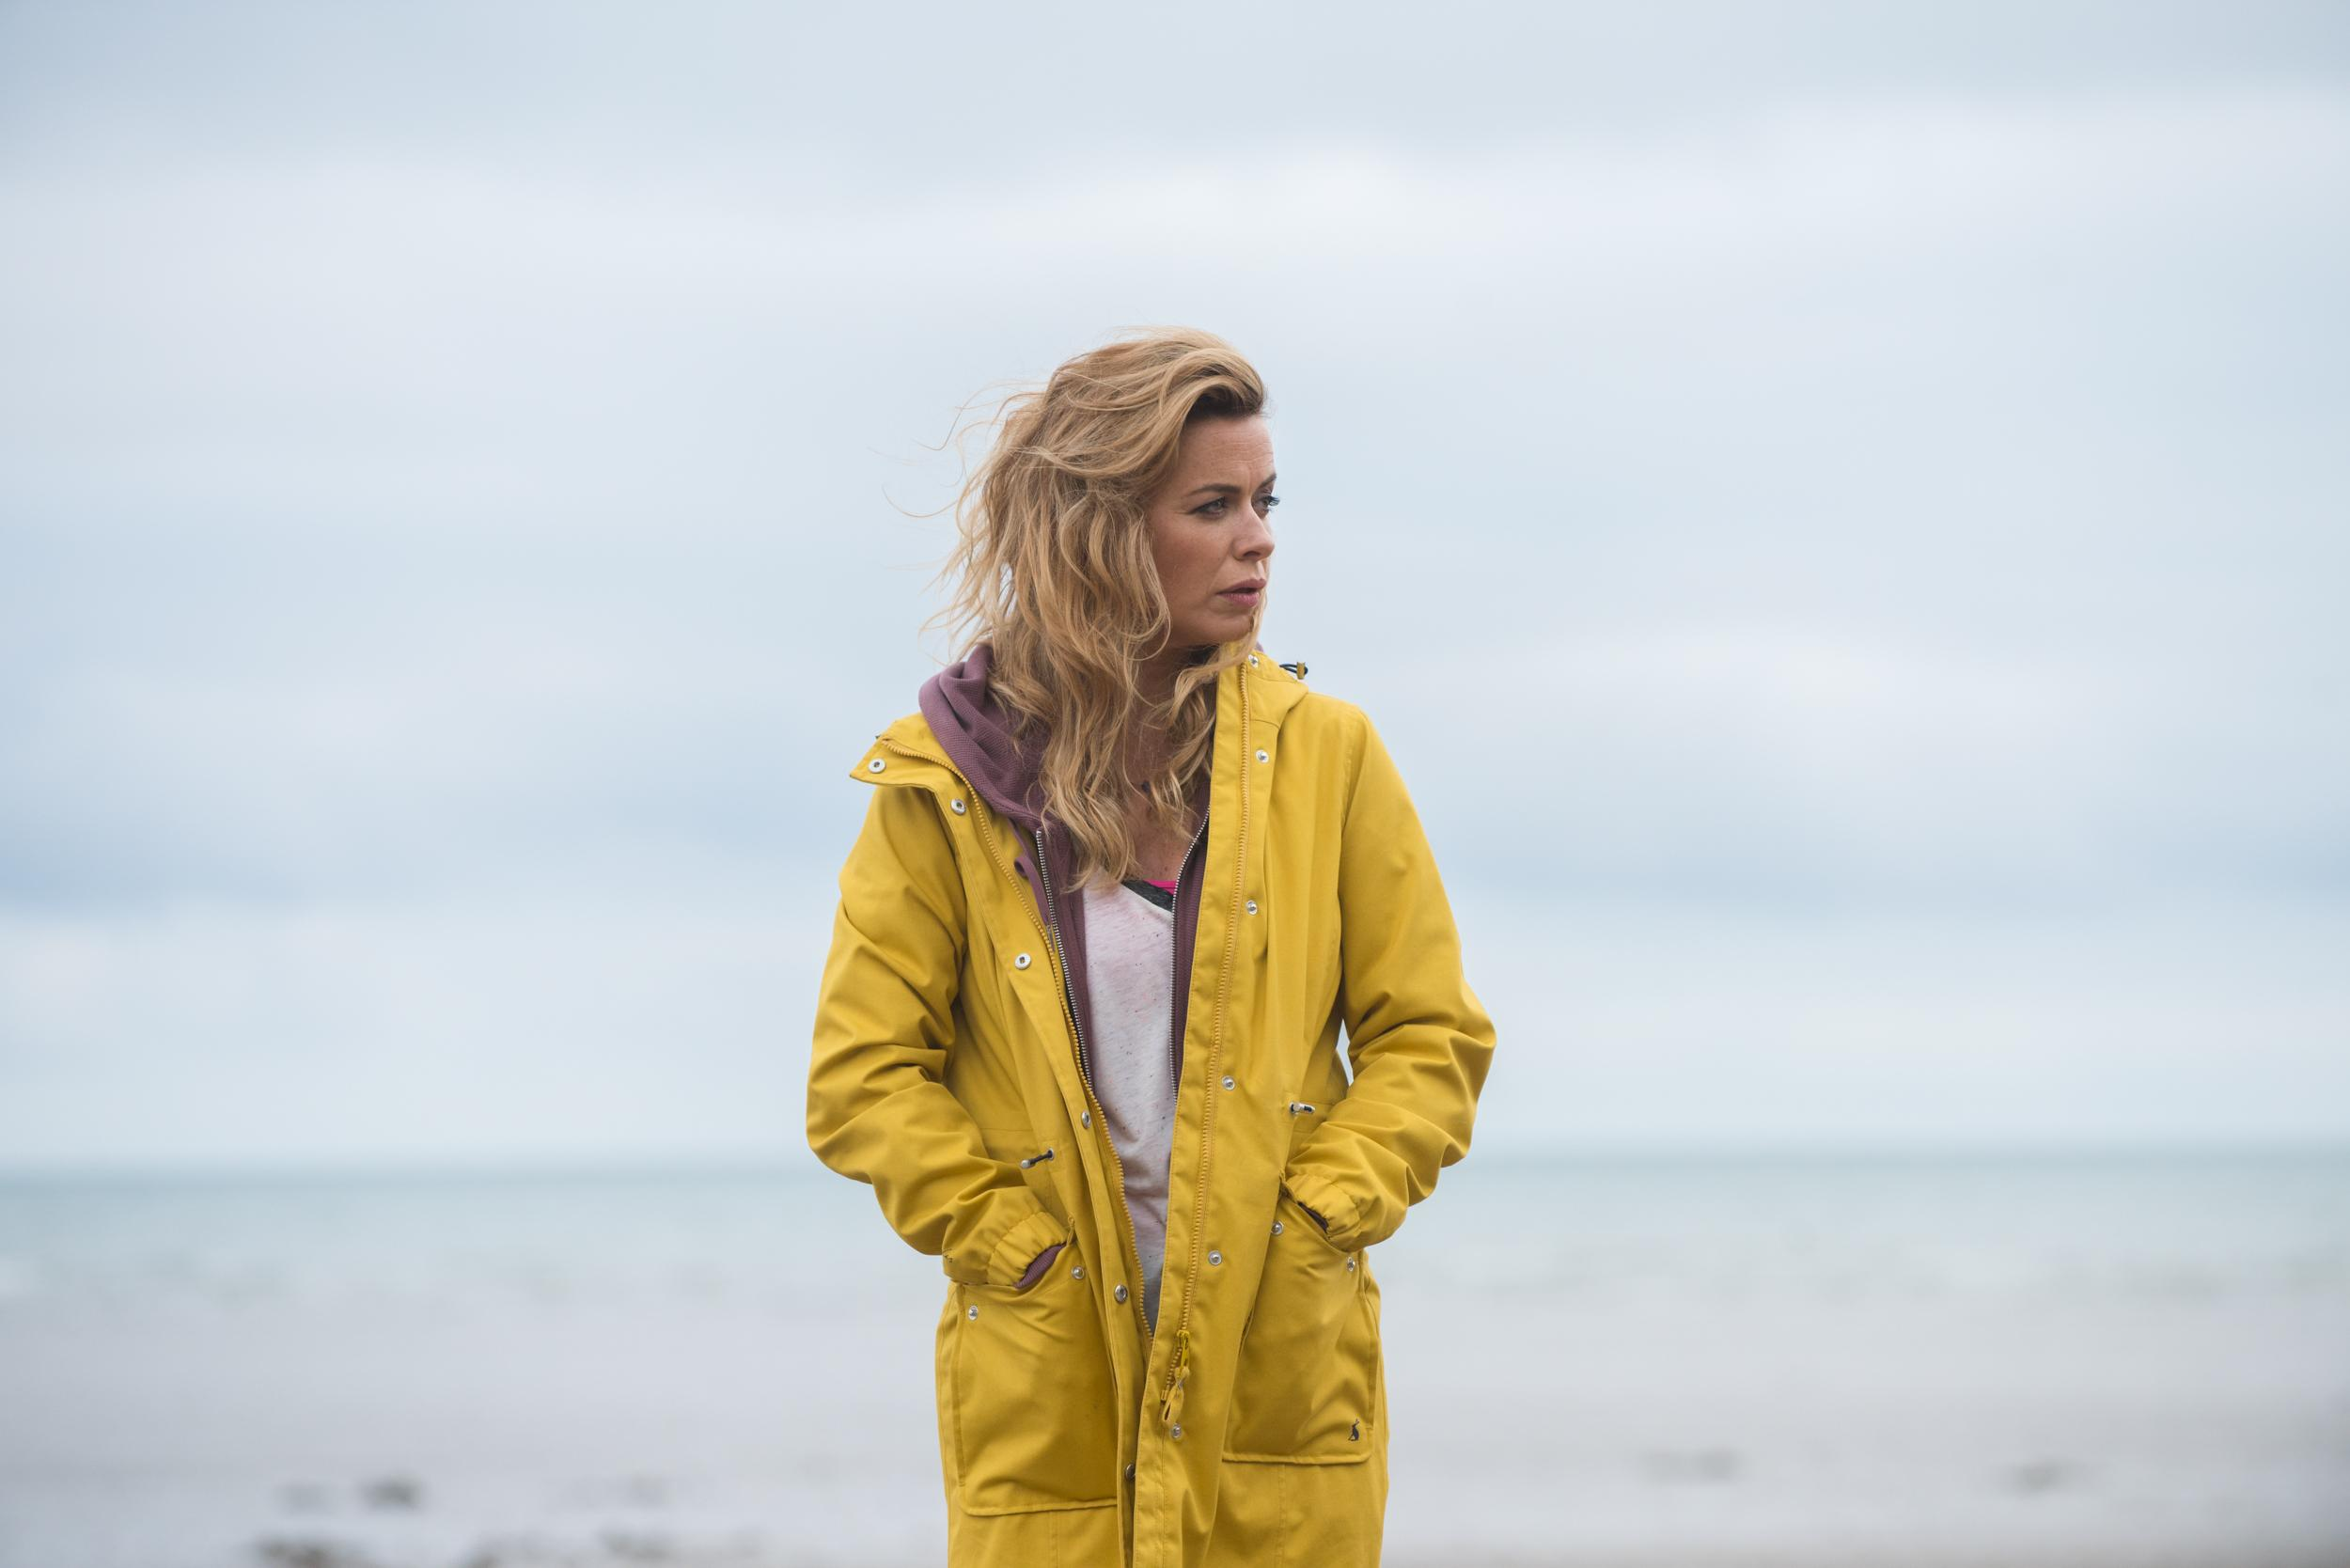 What is Keeping Faith season 2 about?